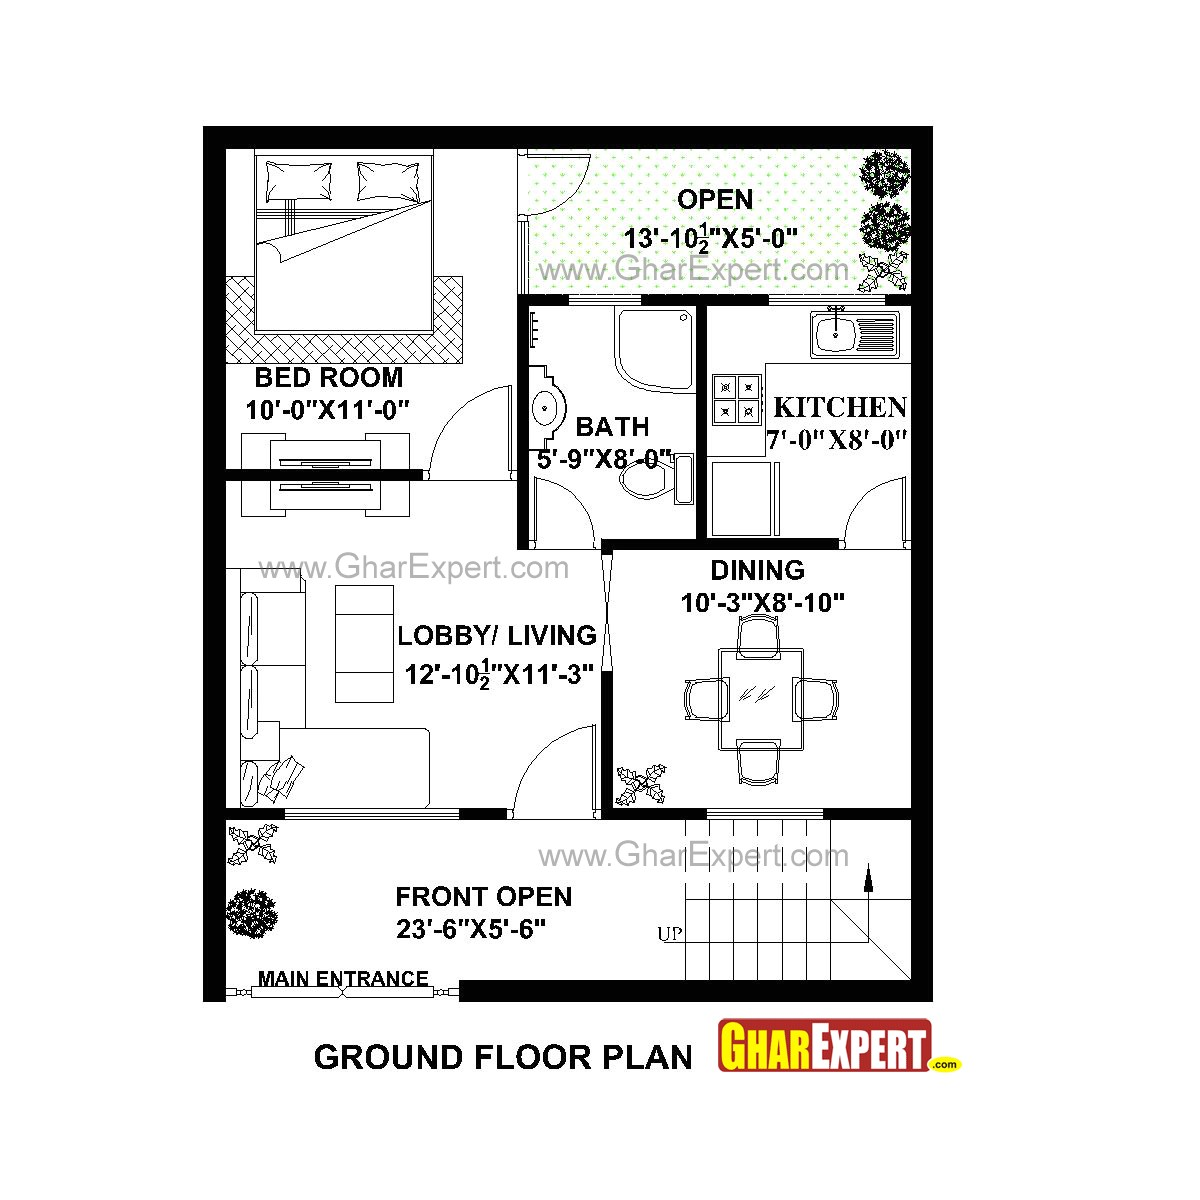 plan for 25 feet by 30 feet plot plot size 83 square yards plan code 1631